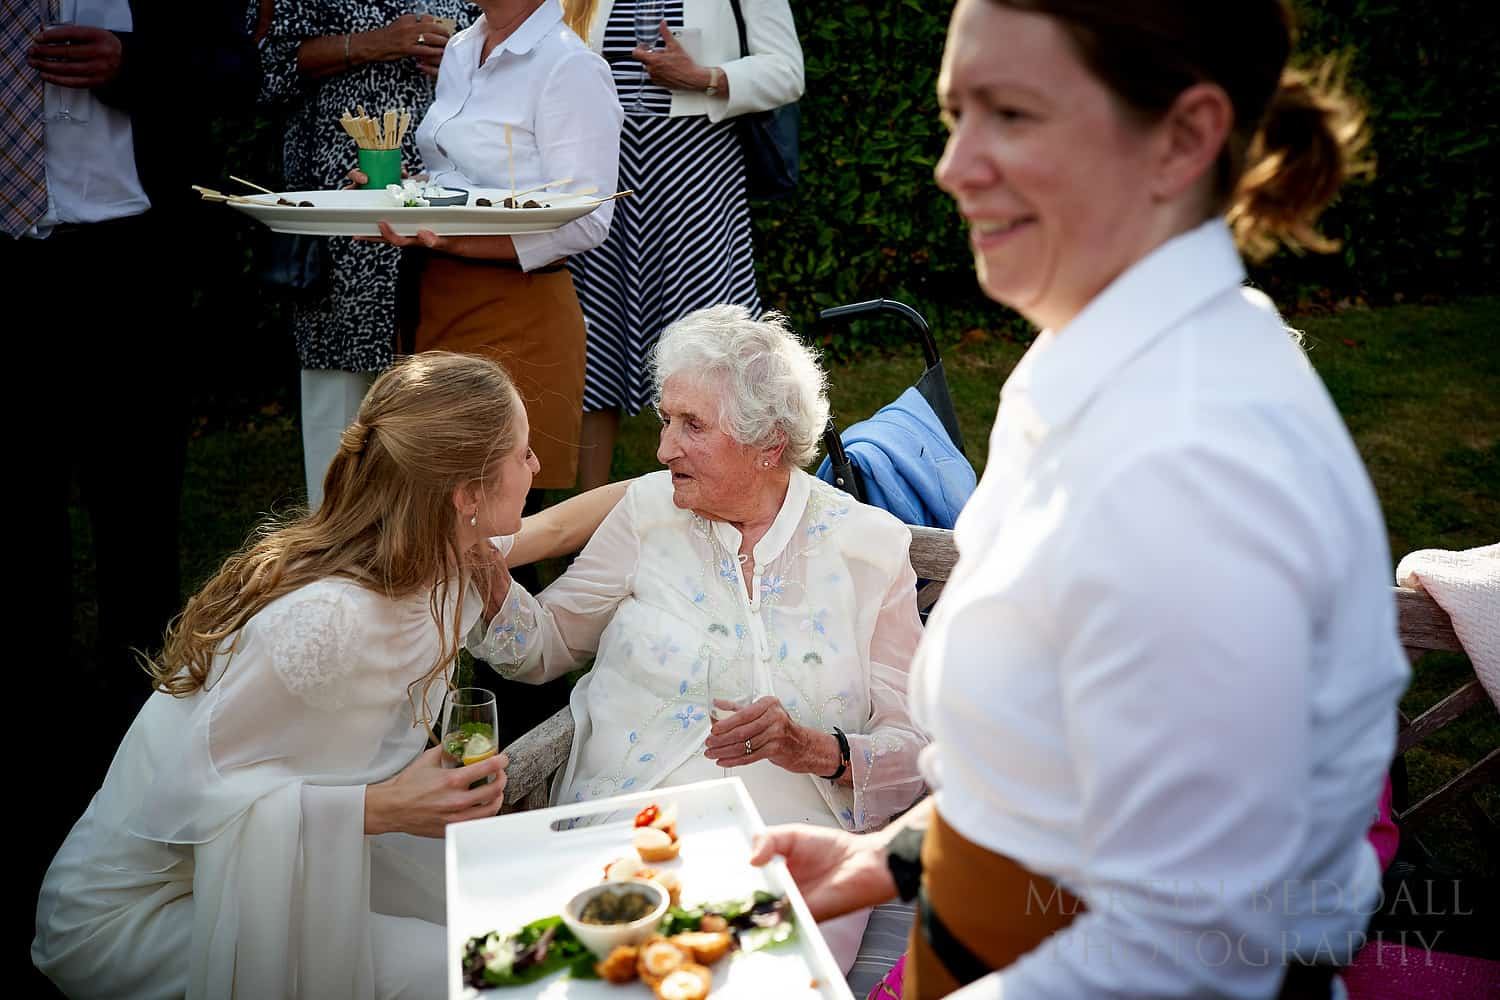 Bride and her grandmother captured with the Zeiss 40mm Batis lens